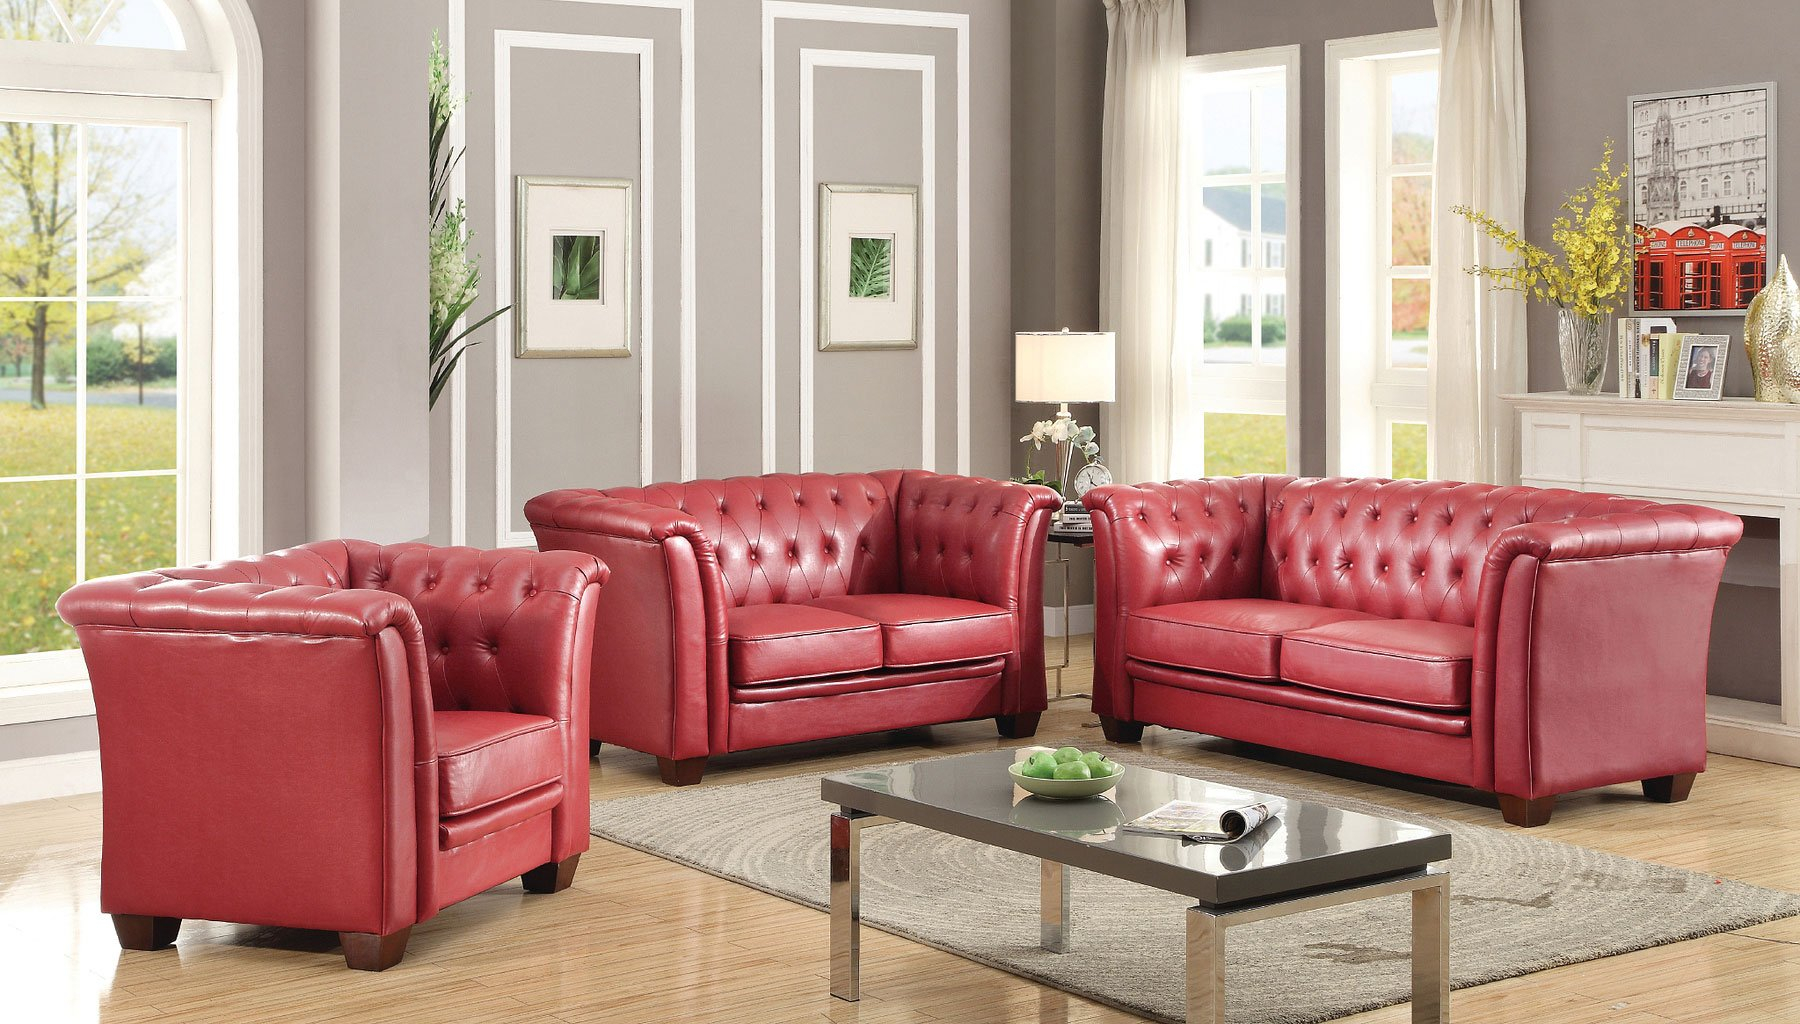 G329 Tufted Living Room Set Red pertaining to 11 Genius Initiatives of How to Improve Red Living Room Sets